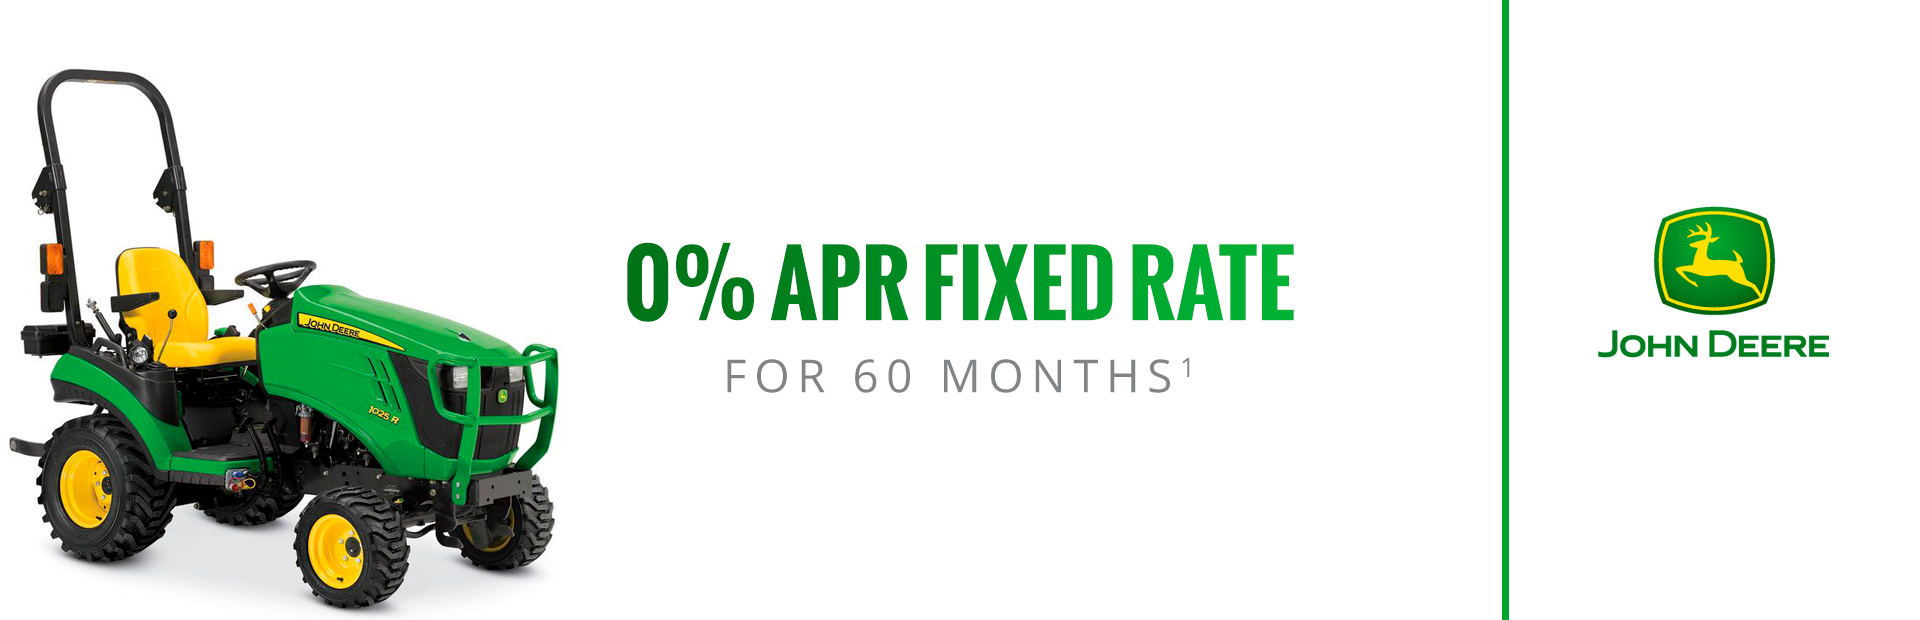 John Deere: 0% APR fixed rate for 60 Months